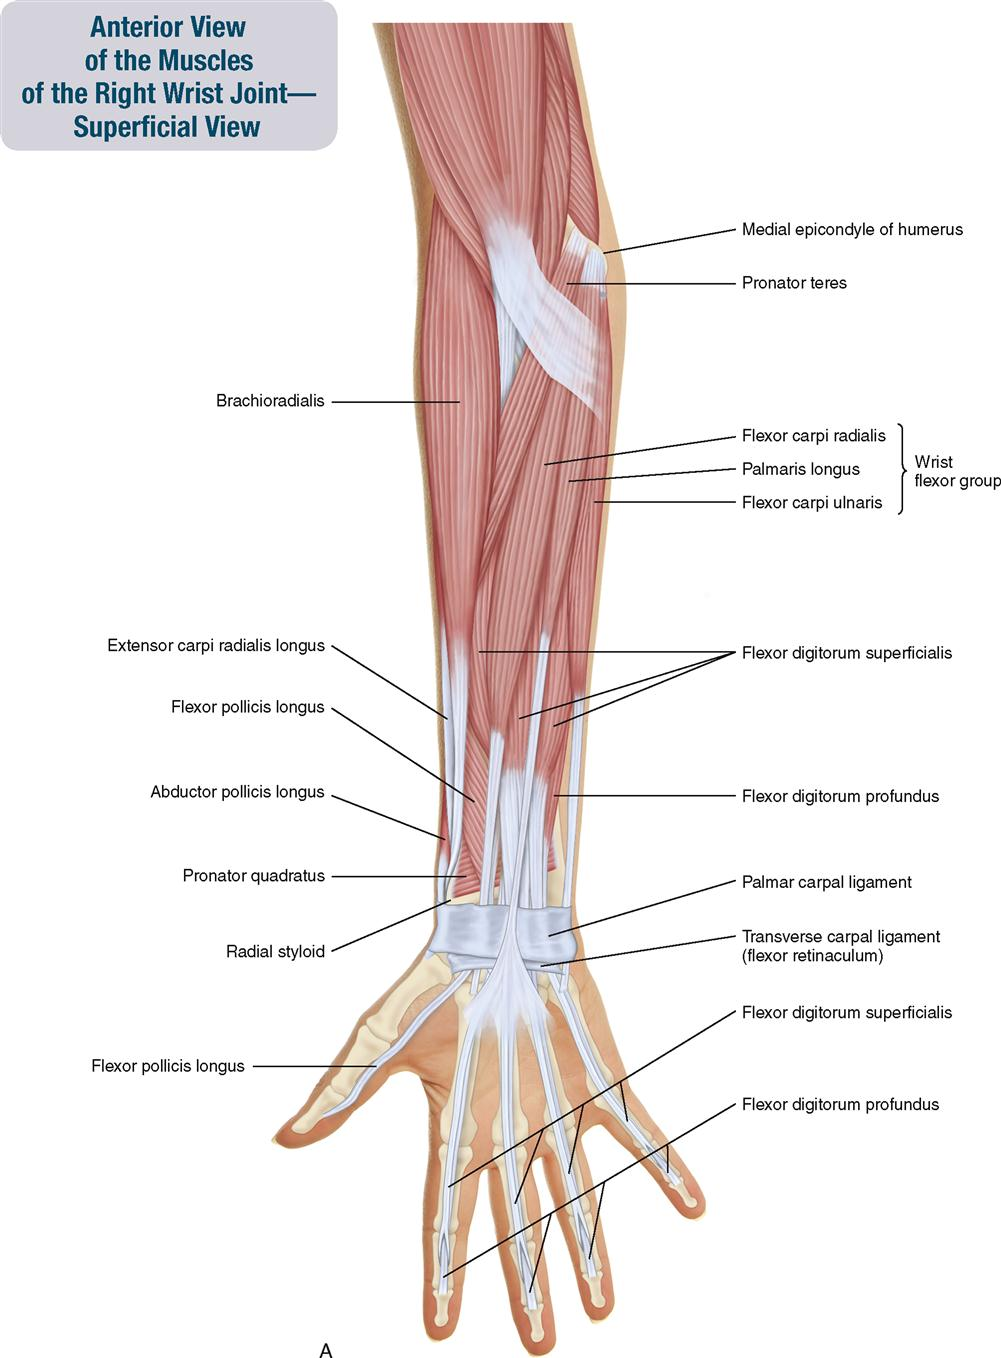 7 Muscles Of The Forearm And Hand Musculoskeletal Key